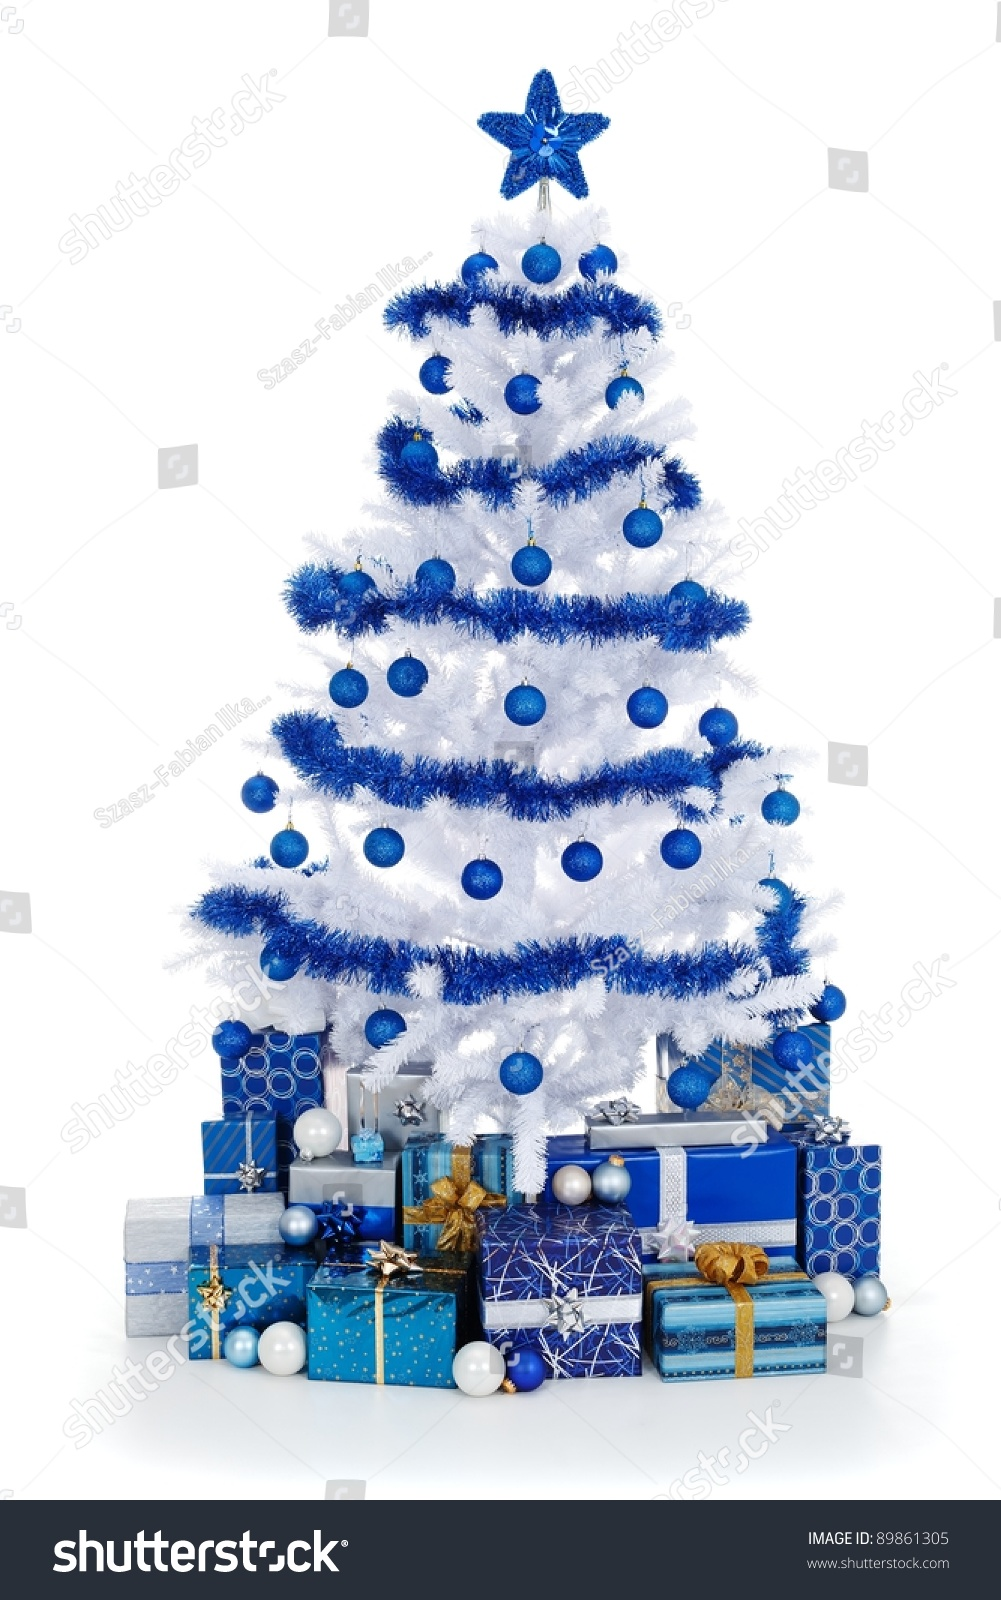 artificial white christmas tree on white decorated with blue ornaments and garland lots of